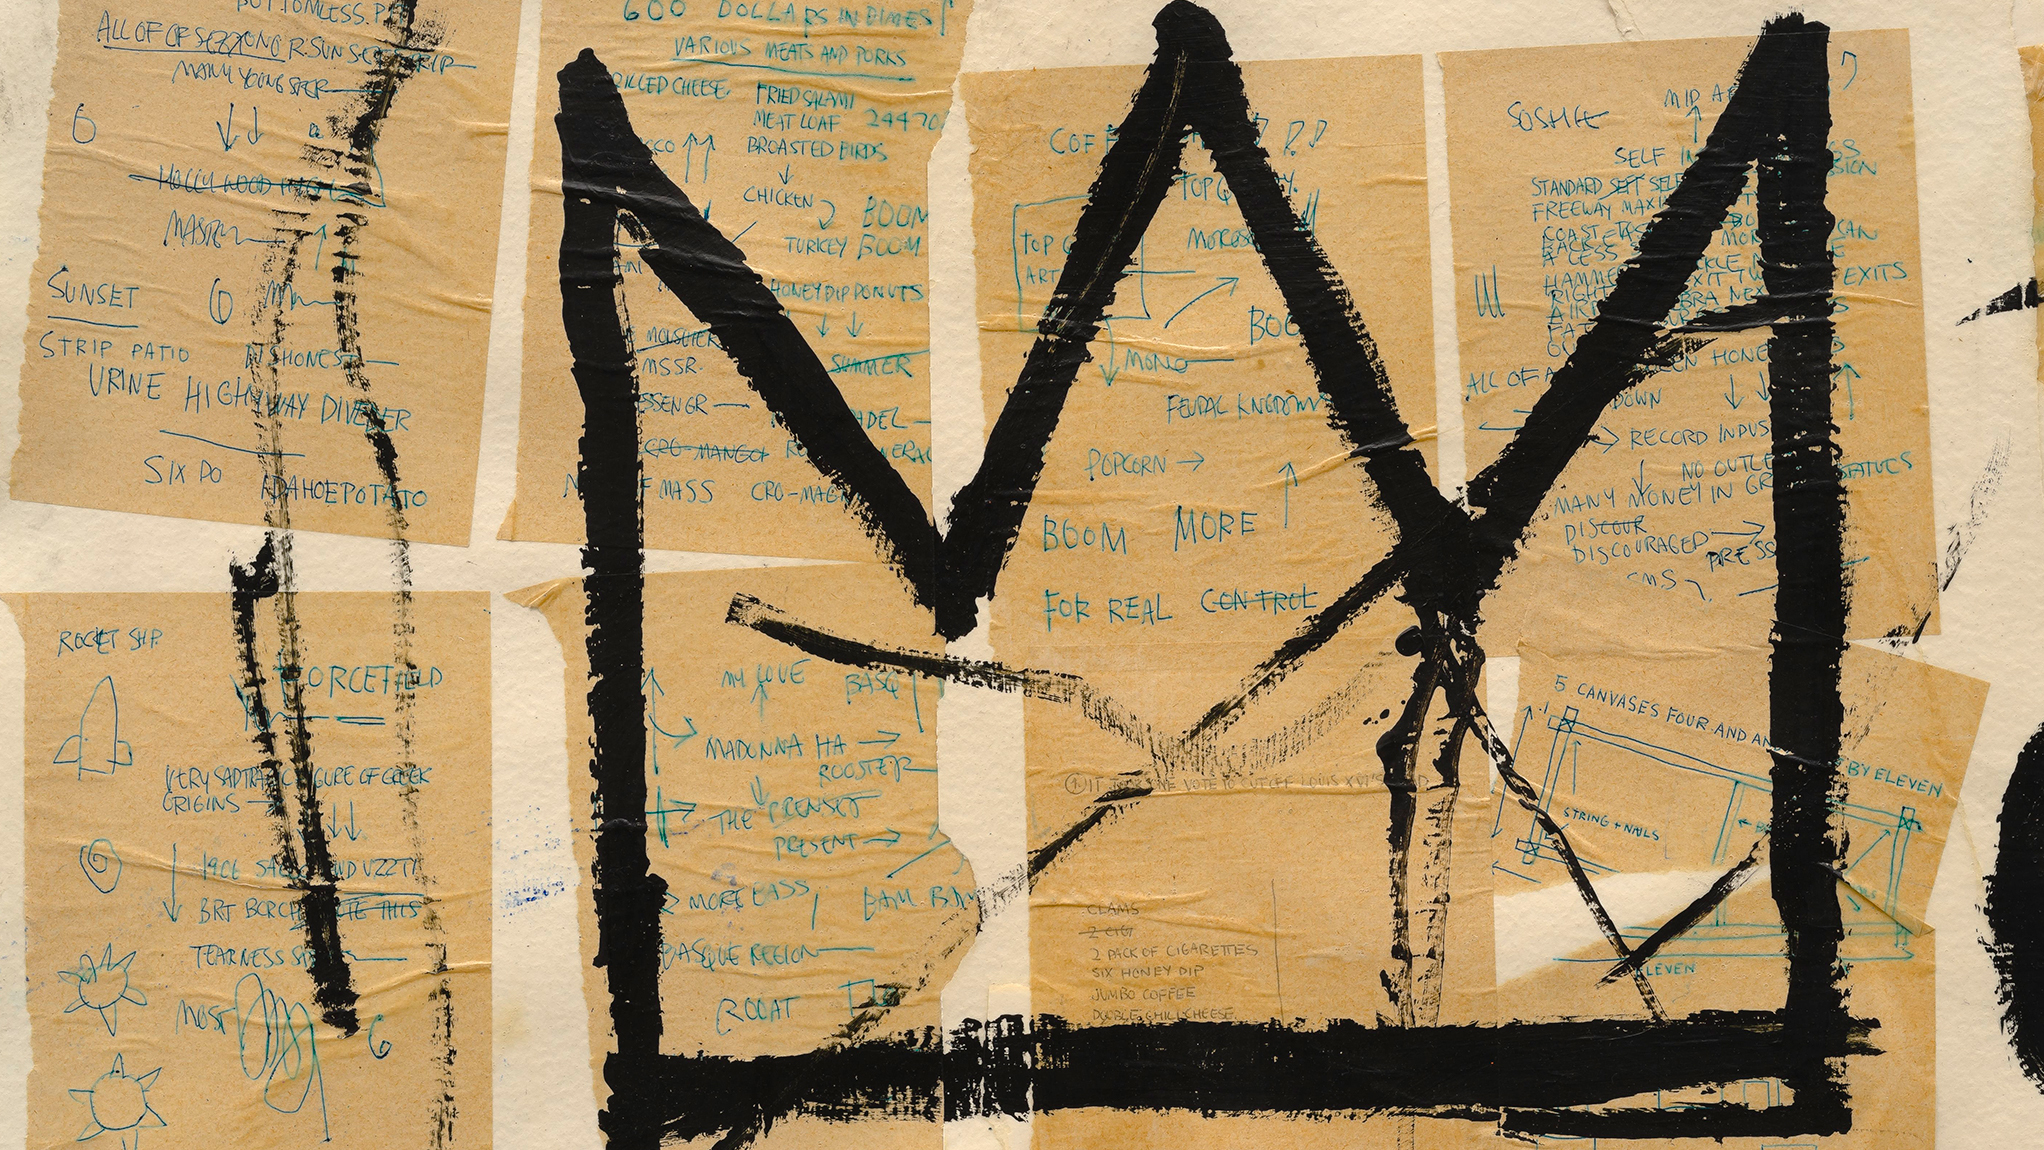 Take a sneak peek at Basquiat's notebooks